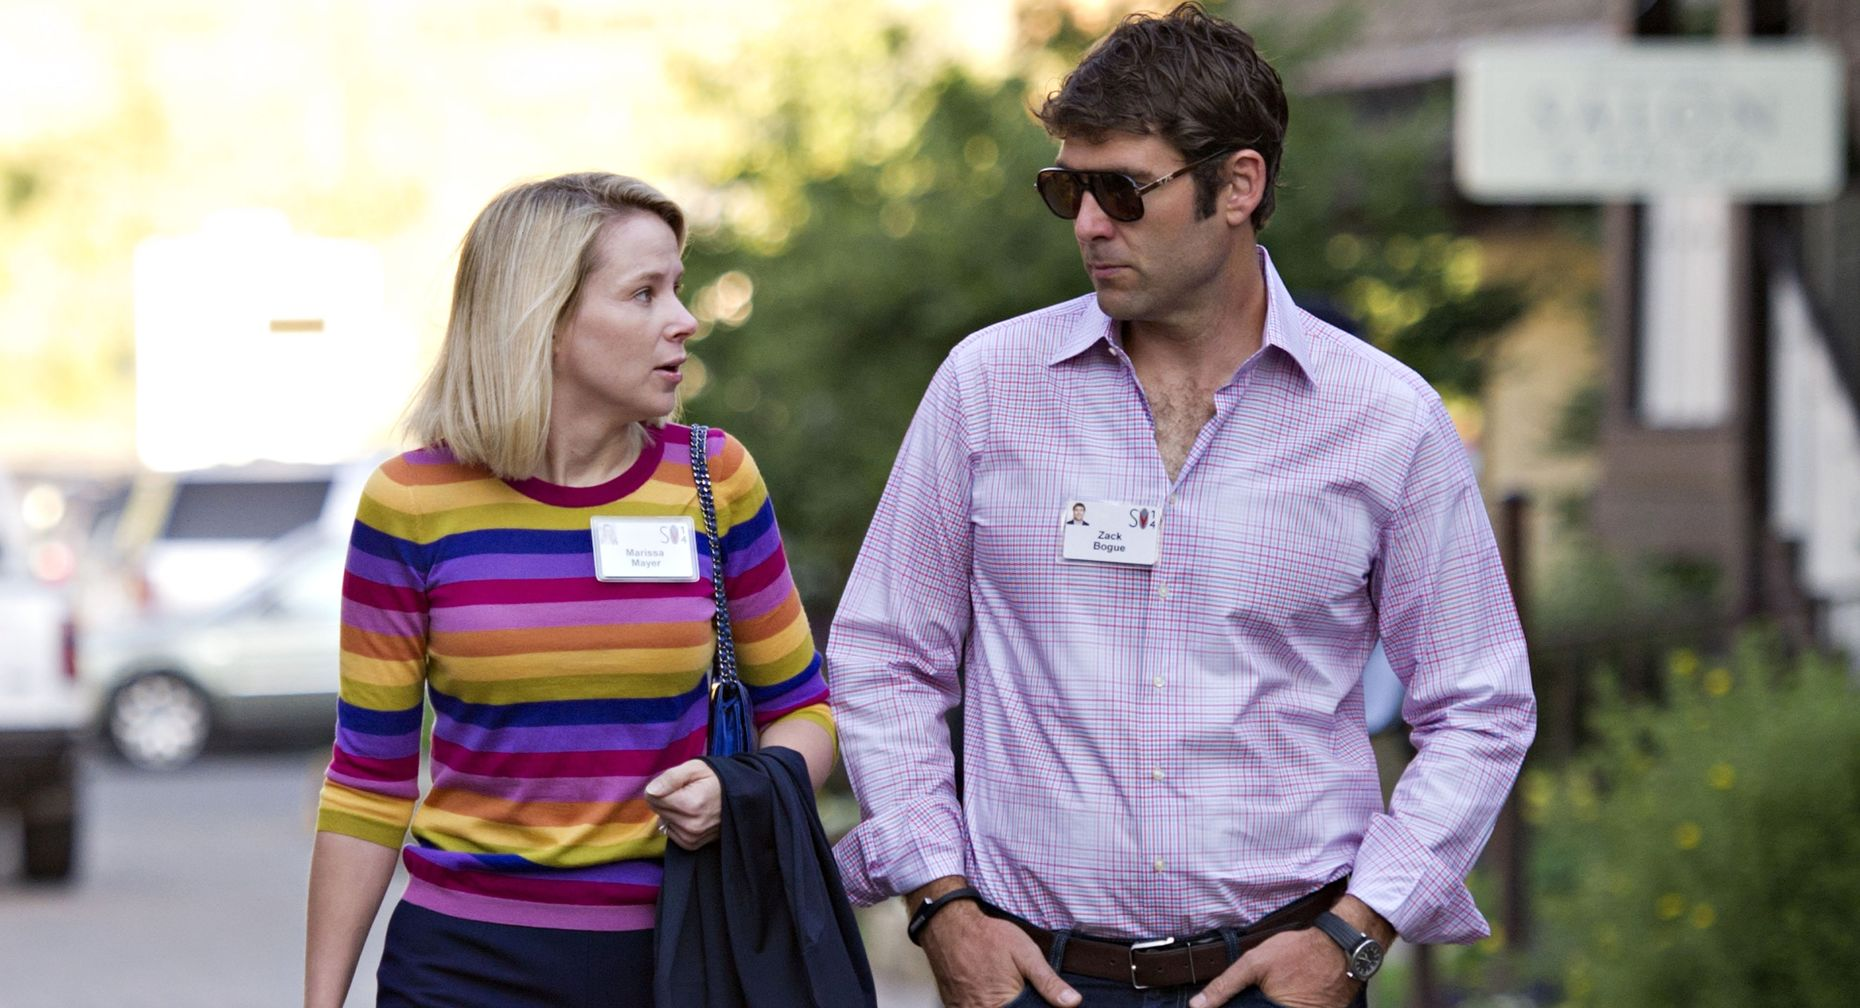 Yahoo CEO Marissa Mayer and husband Zachary Bogue at last year's Sun Valley. Photo by Bloomberg.